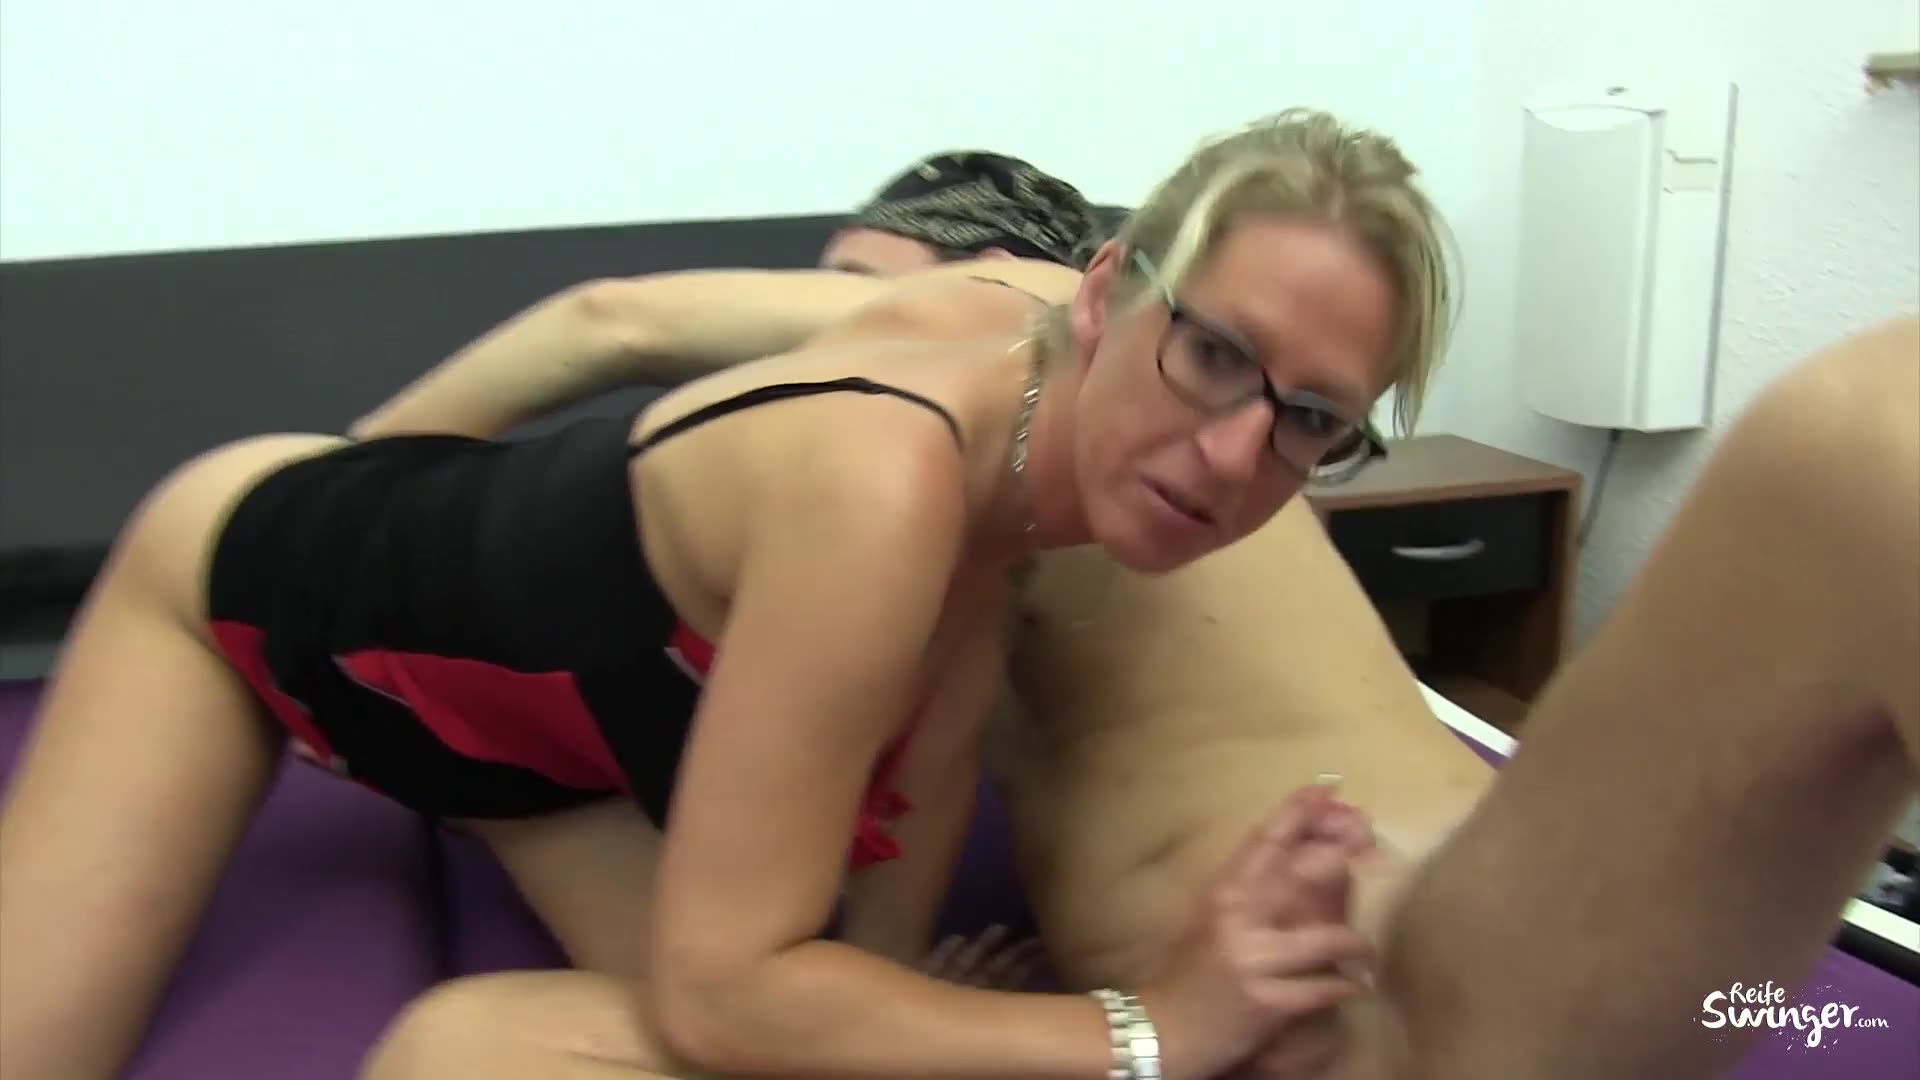 Realmomexposed experienced masseuse cant resist a young coc - 5 6